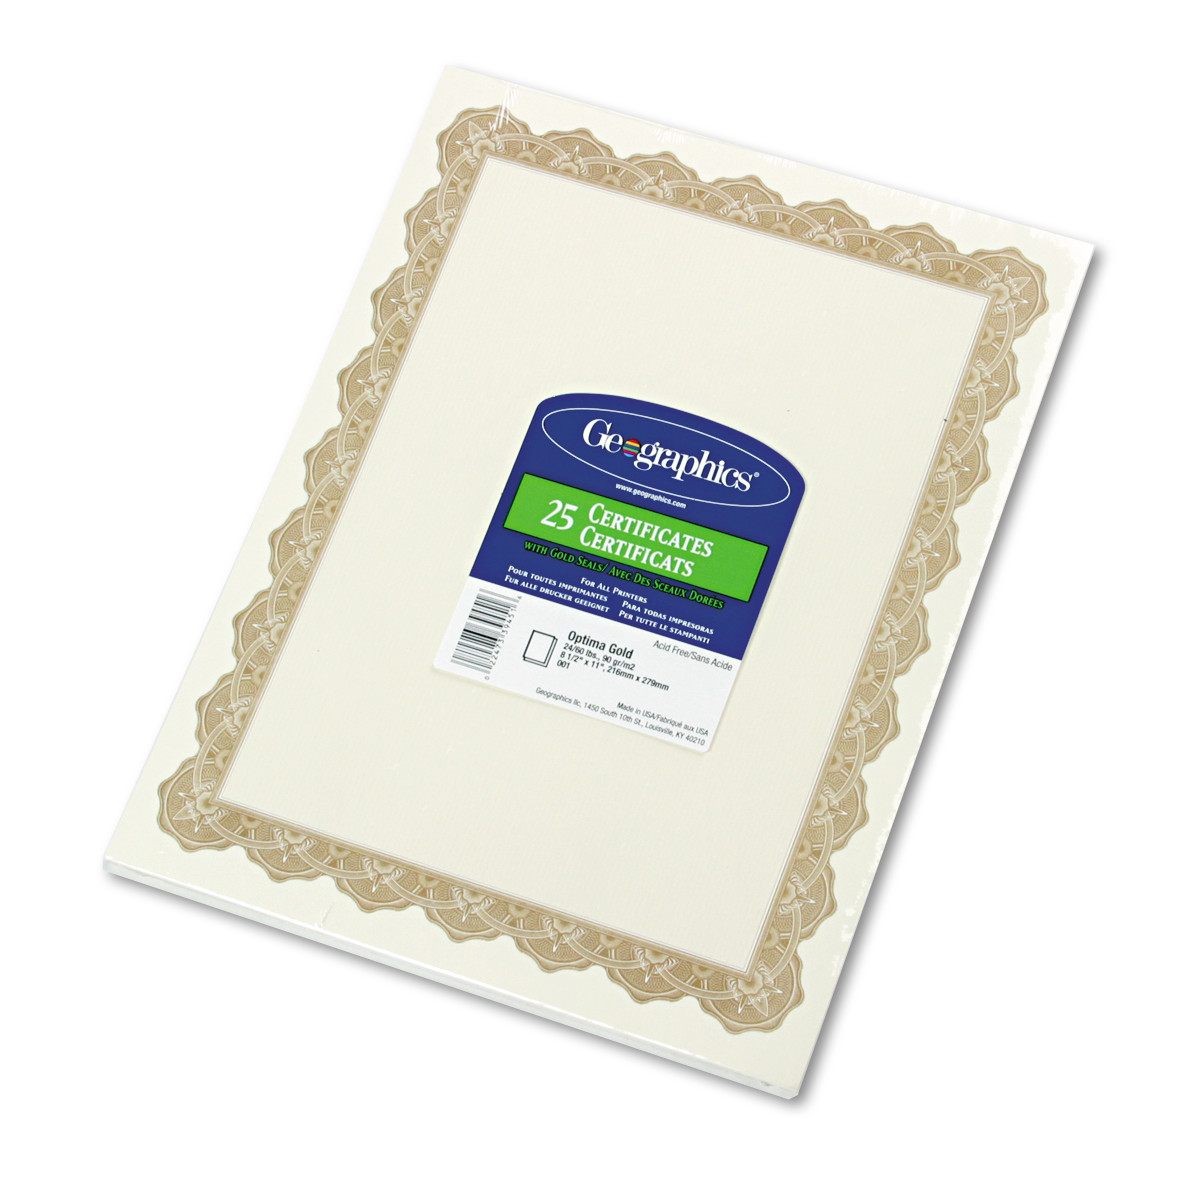 Geographics Parchment Paper Certificates, 8-1/2 x 11, Optima Gold Border, 25/Pack -GEO39451